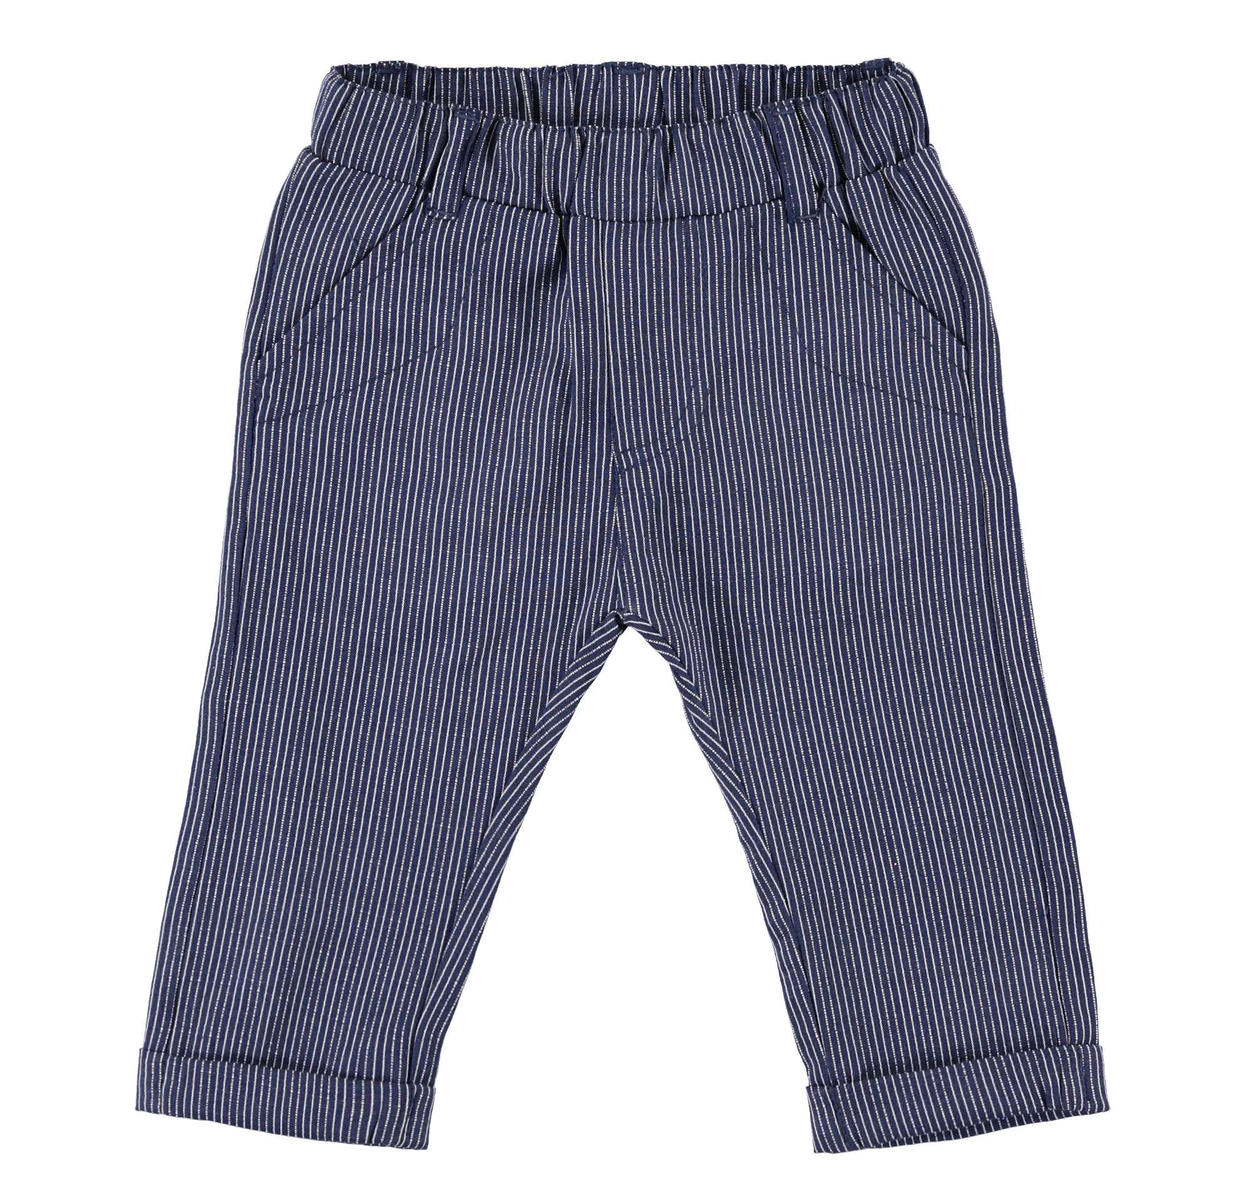 78f13c6a3 Elegant pinstripe ceremony trousers for newborn from 0 to 24 months ...